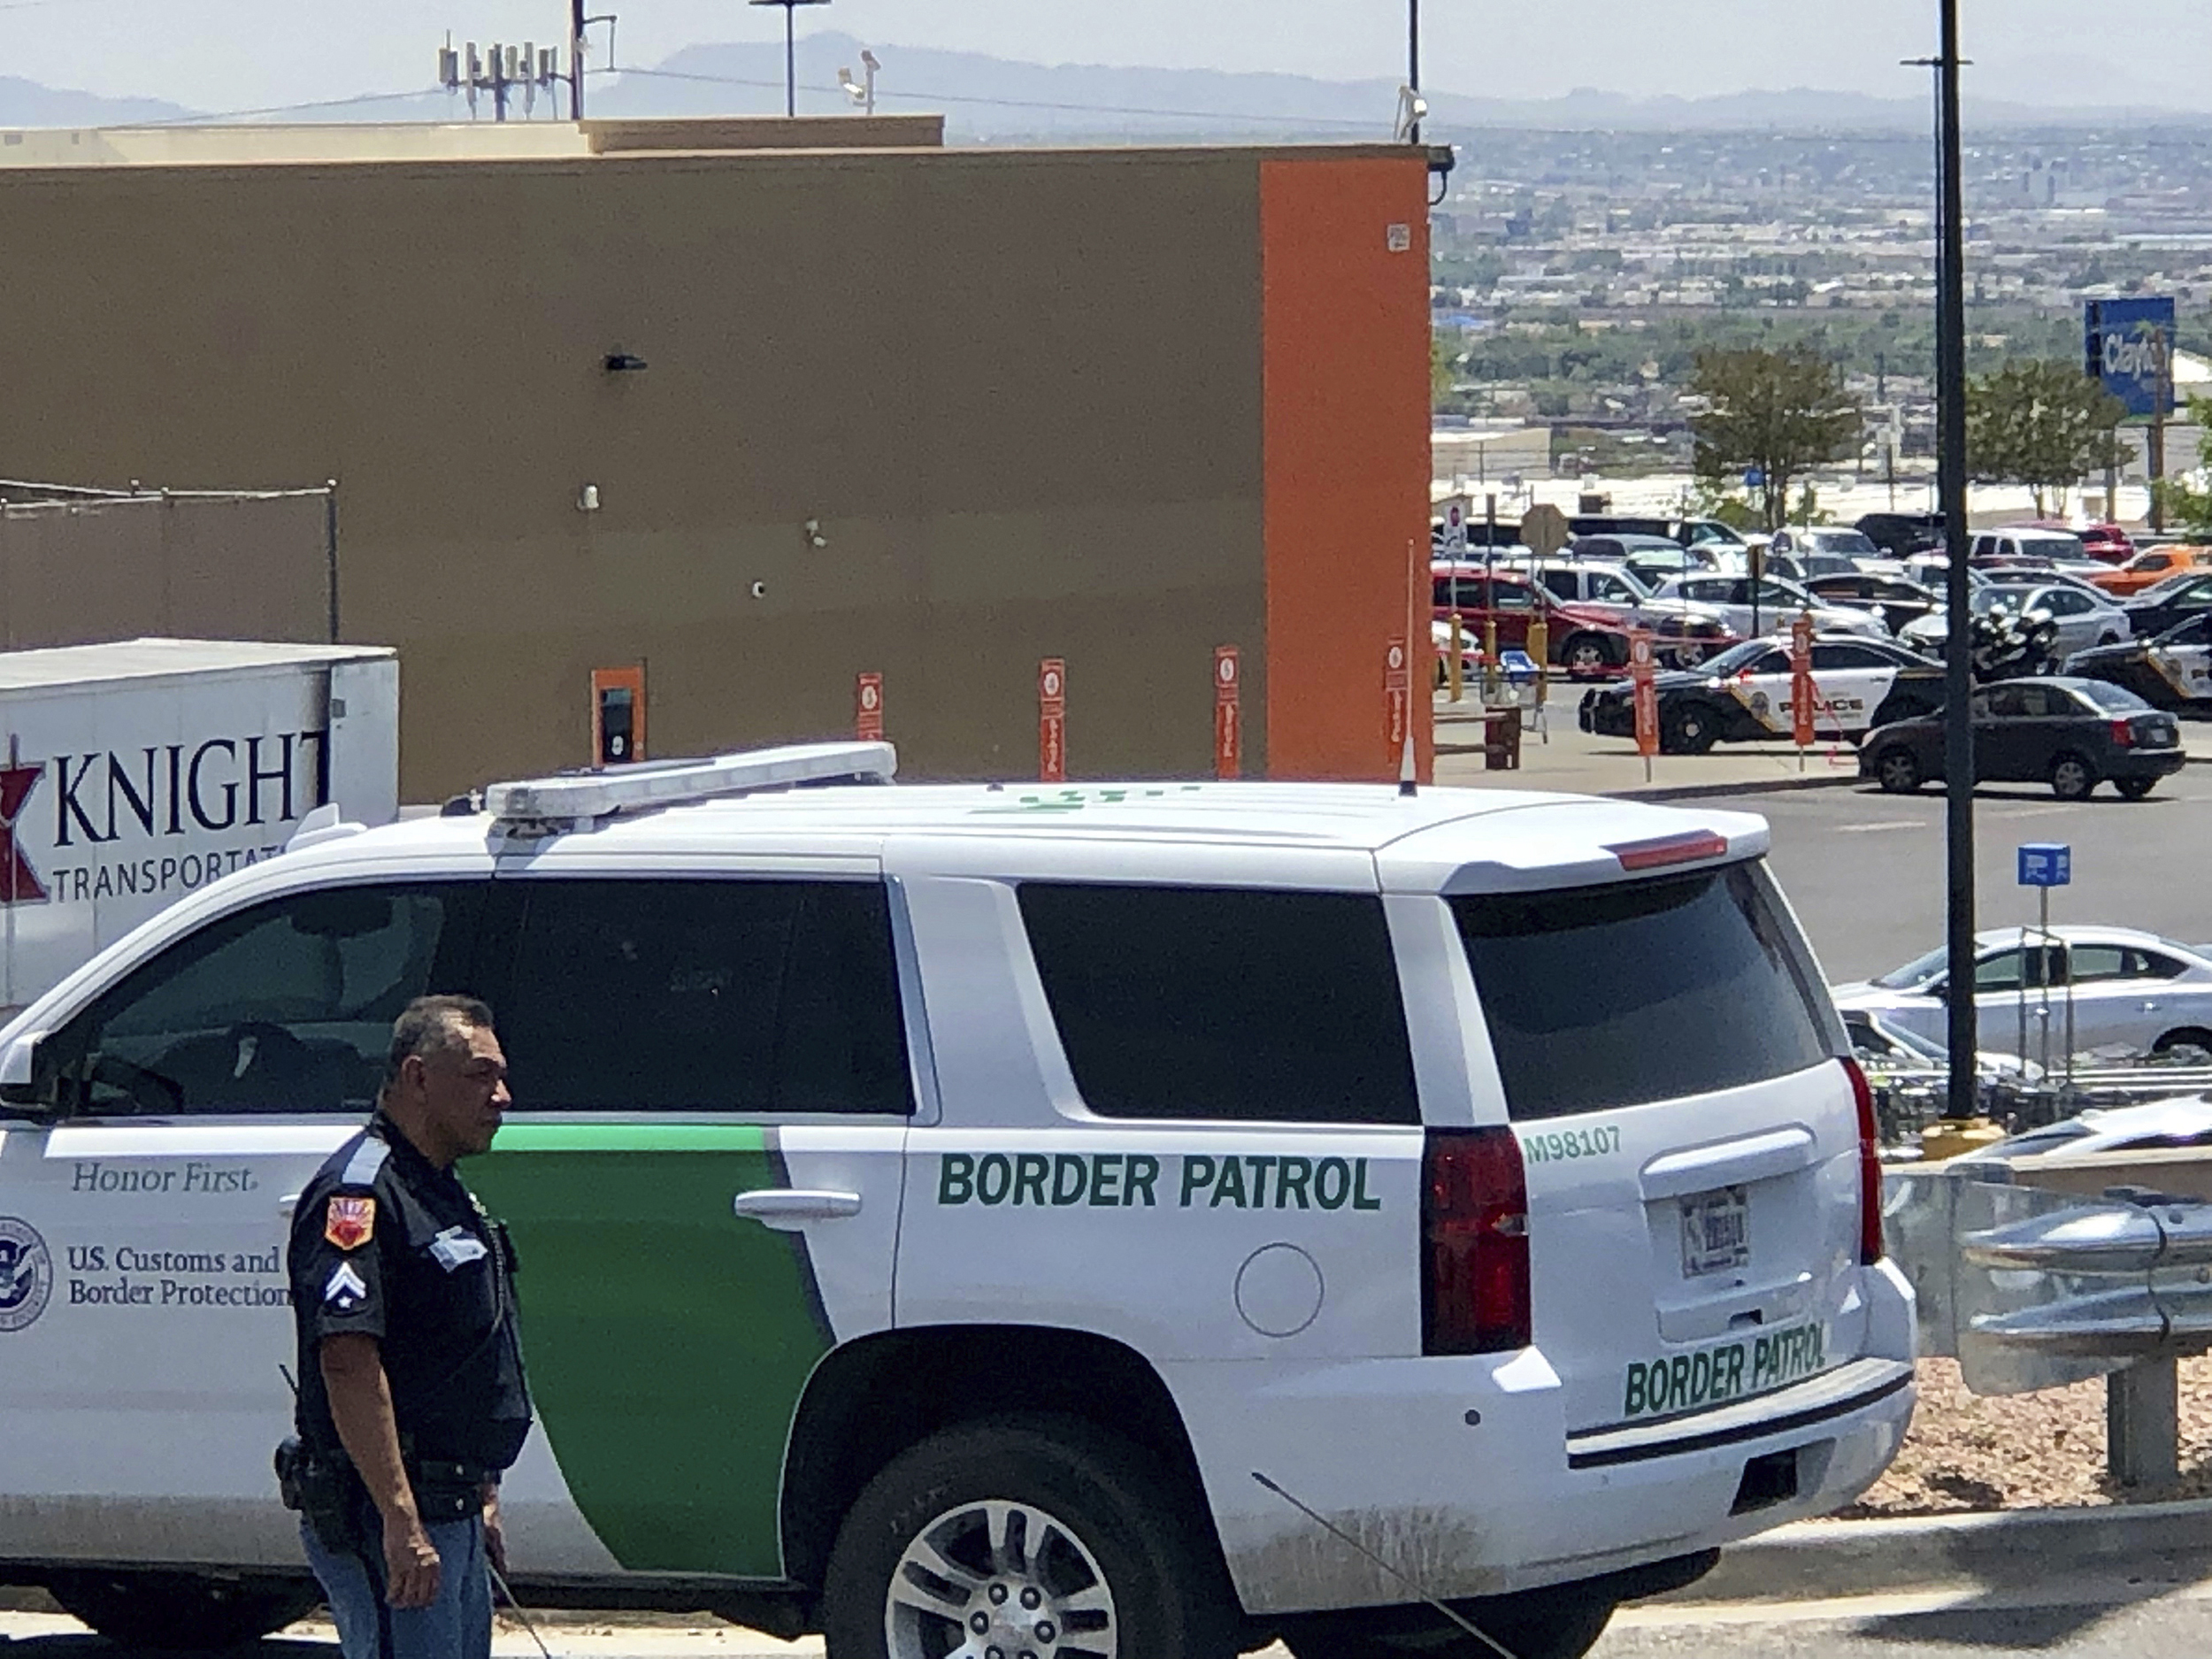 The Latest: Official: El Paso attack victim dies at hospital